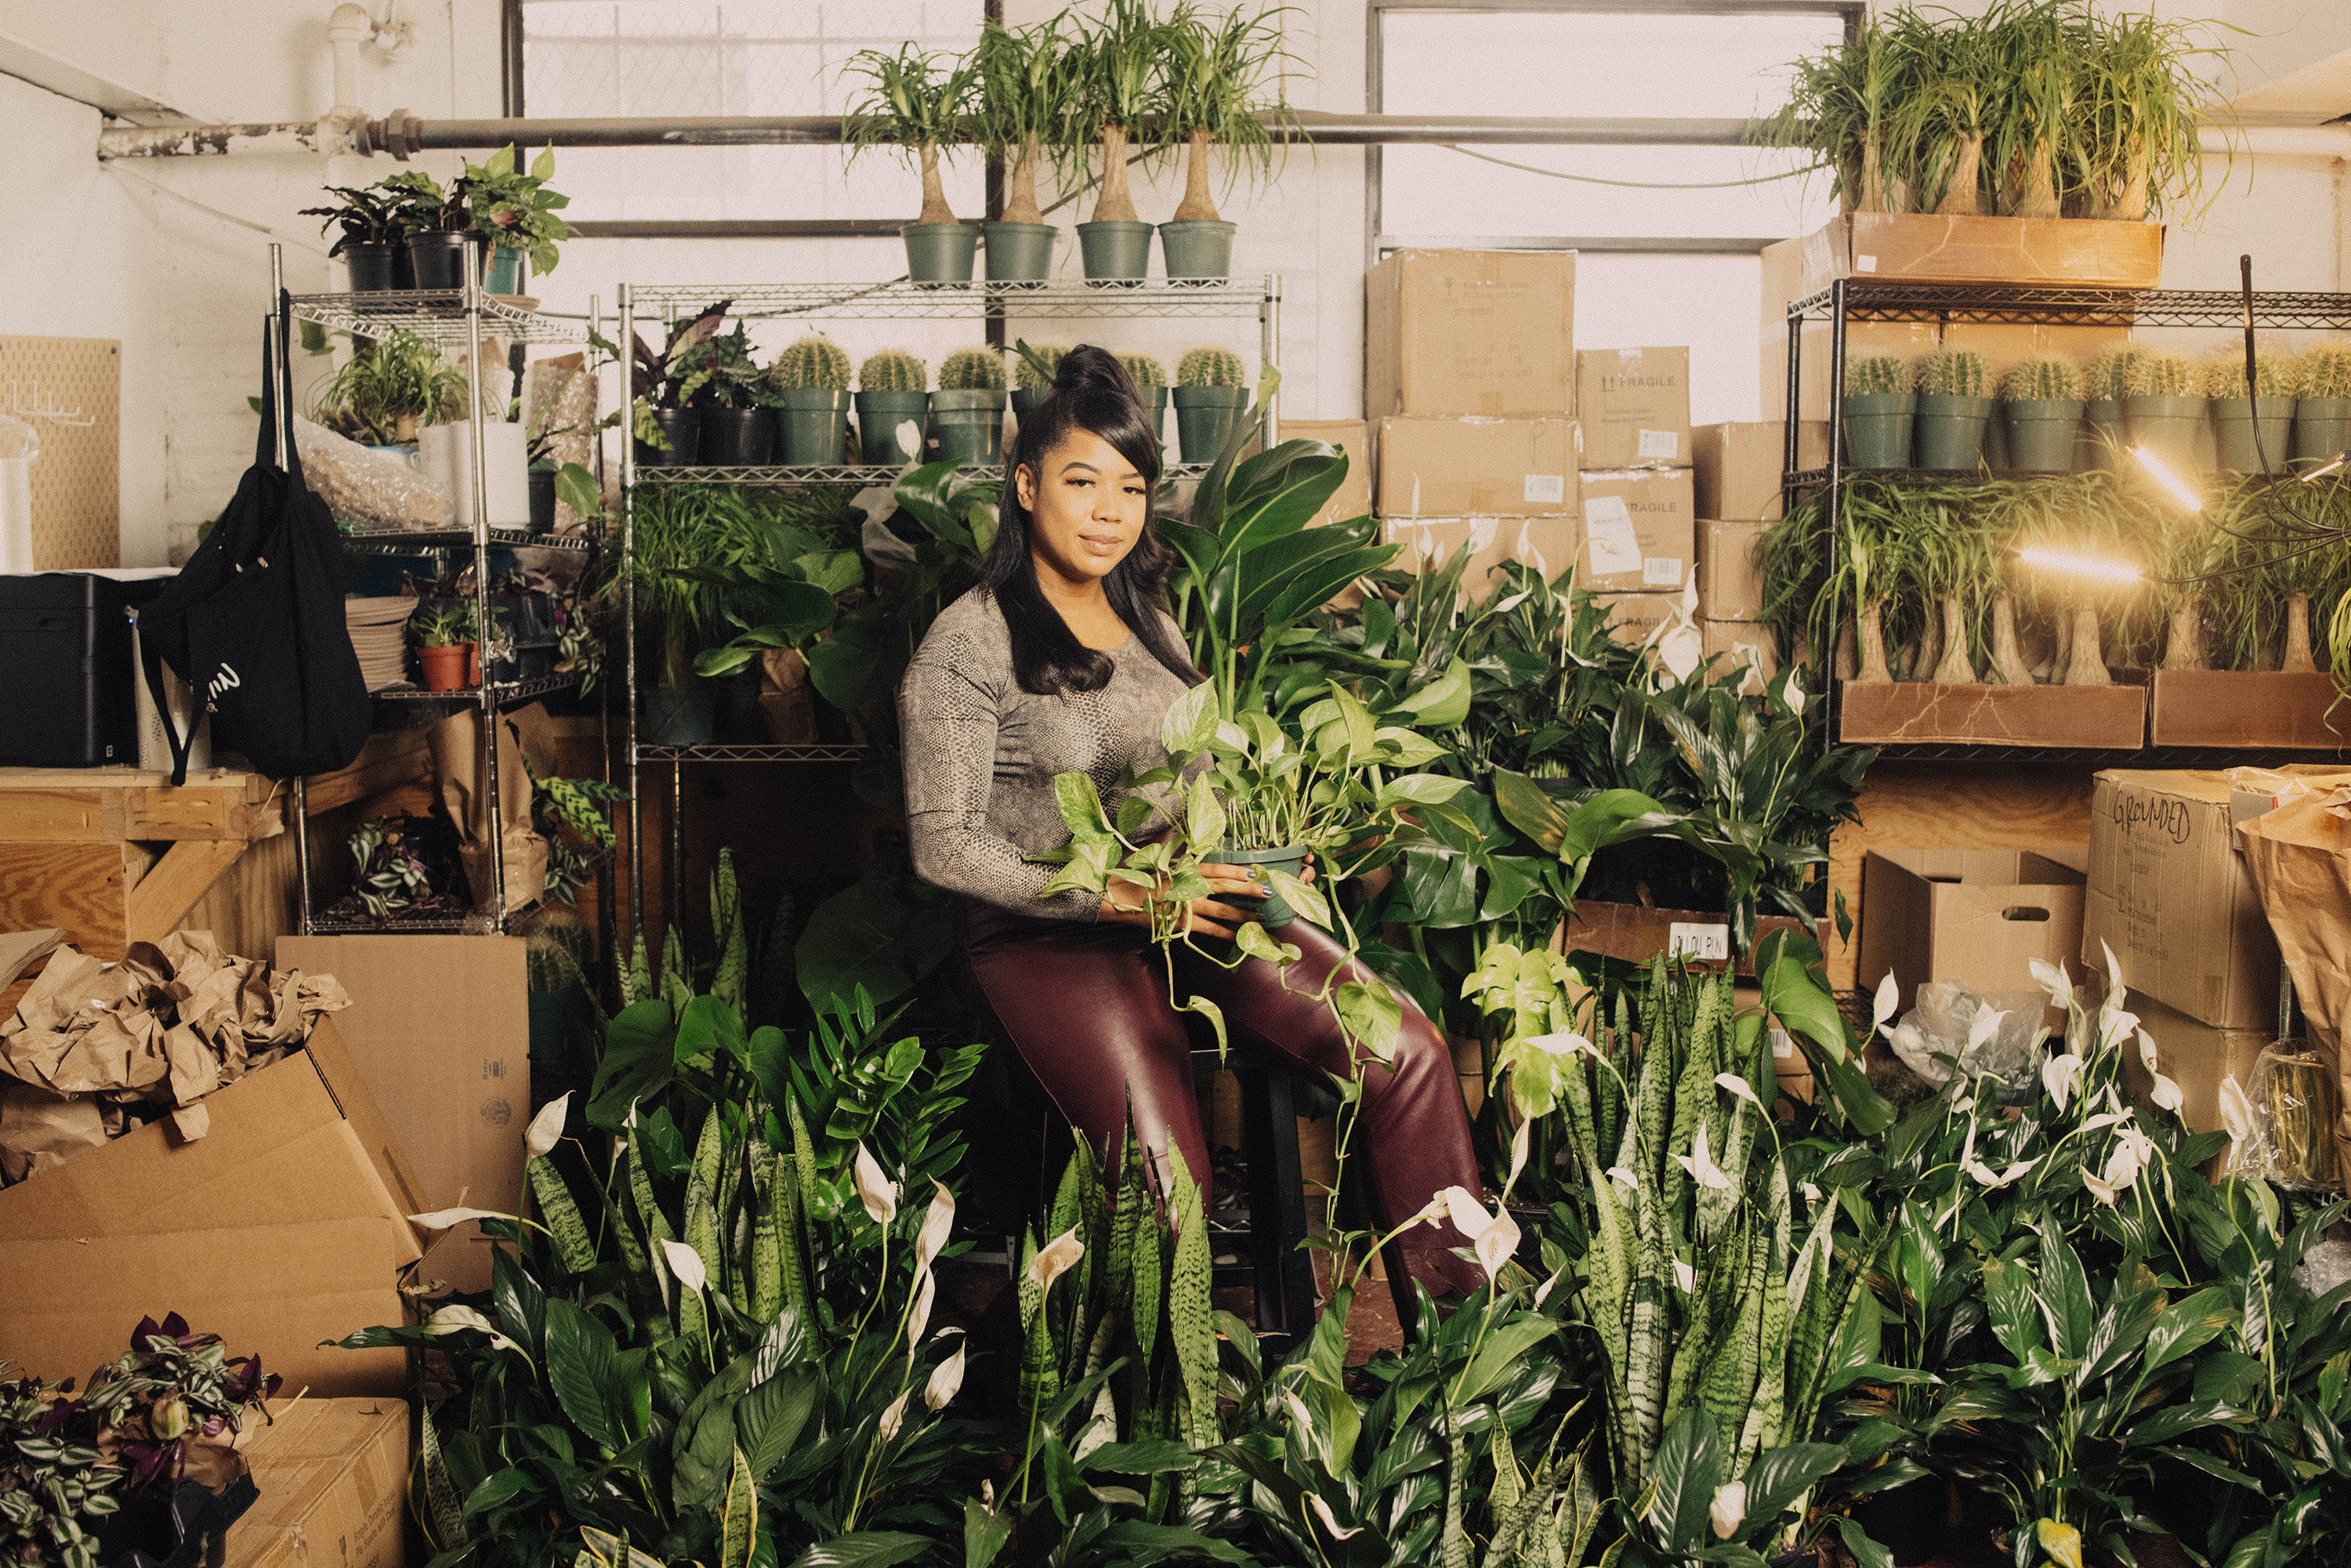 A woman sitting among many plants in a store she owns